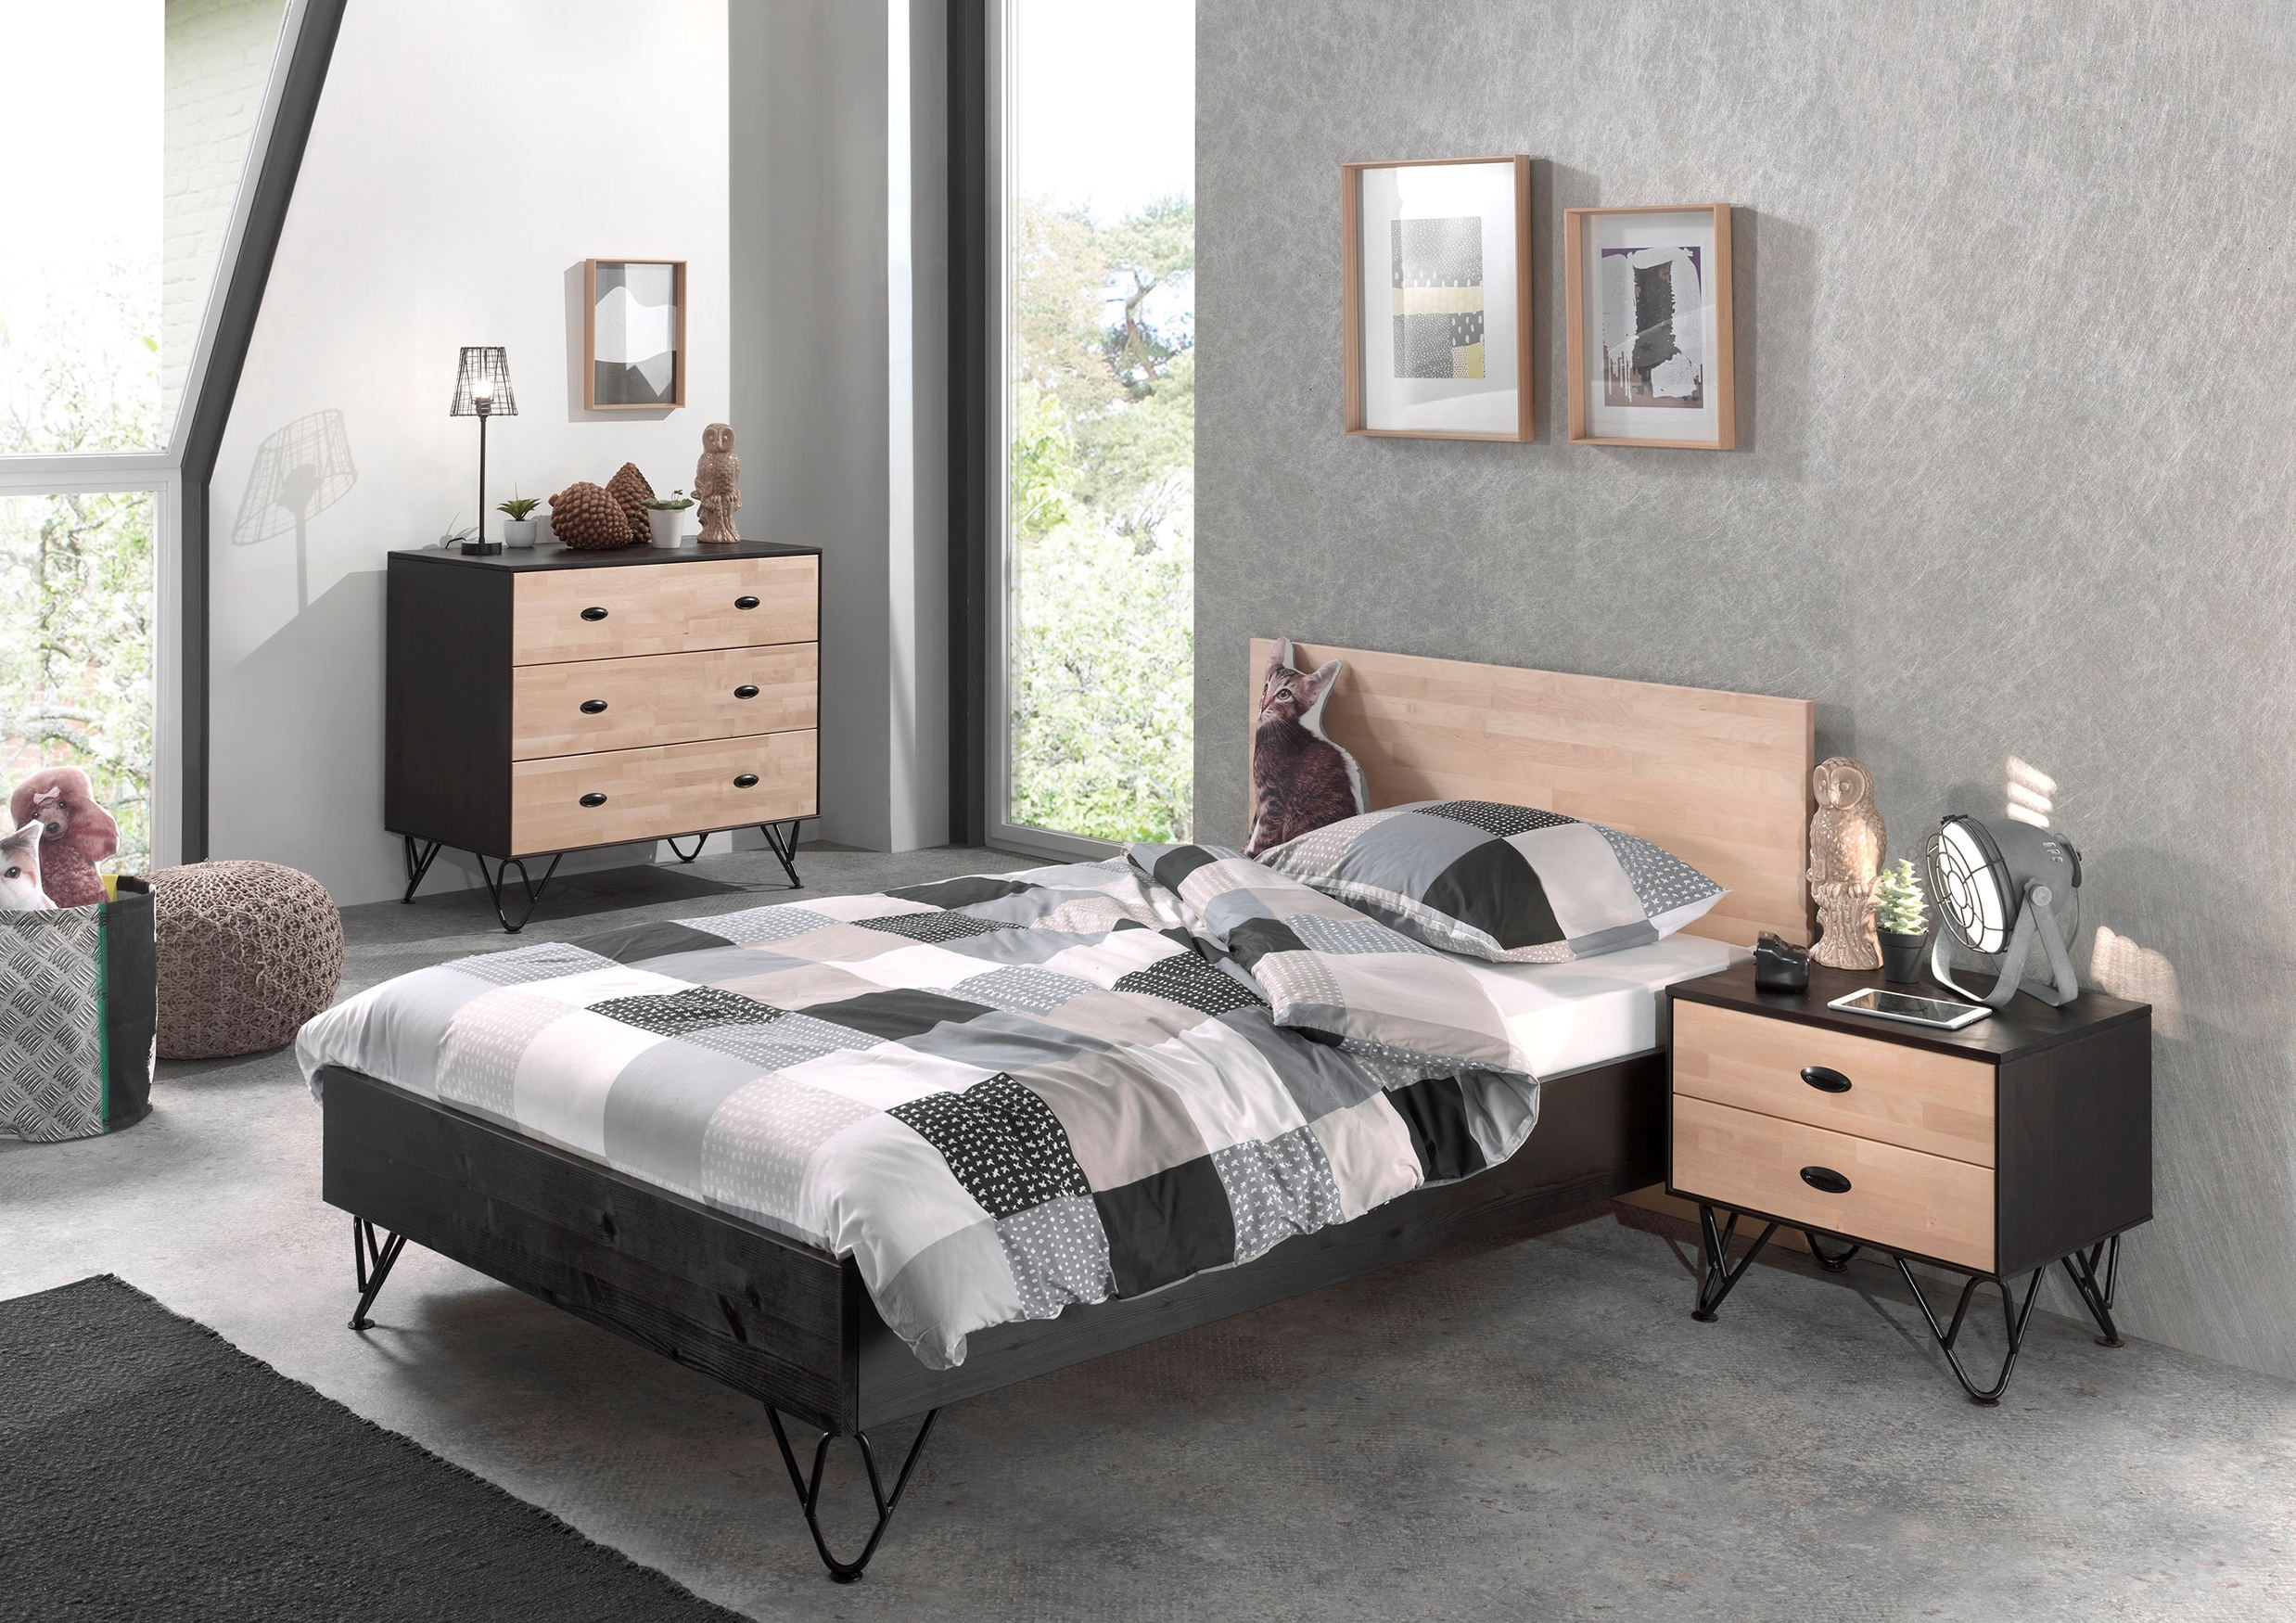 jugendzimmer william bett 120 x 200 cm kommode. Black Bedroom Furniture Sets. Home Design Ideas